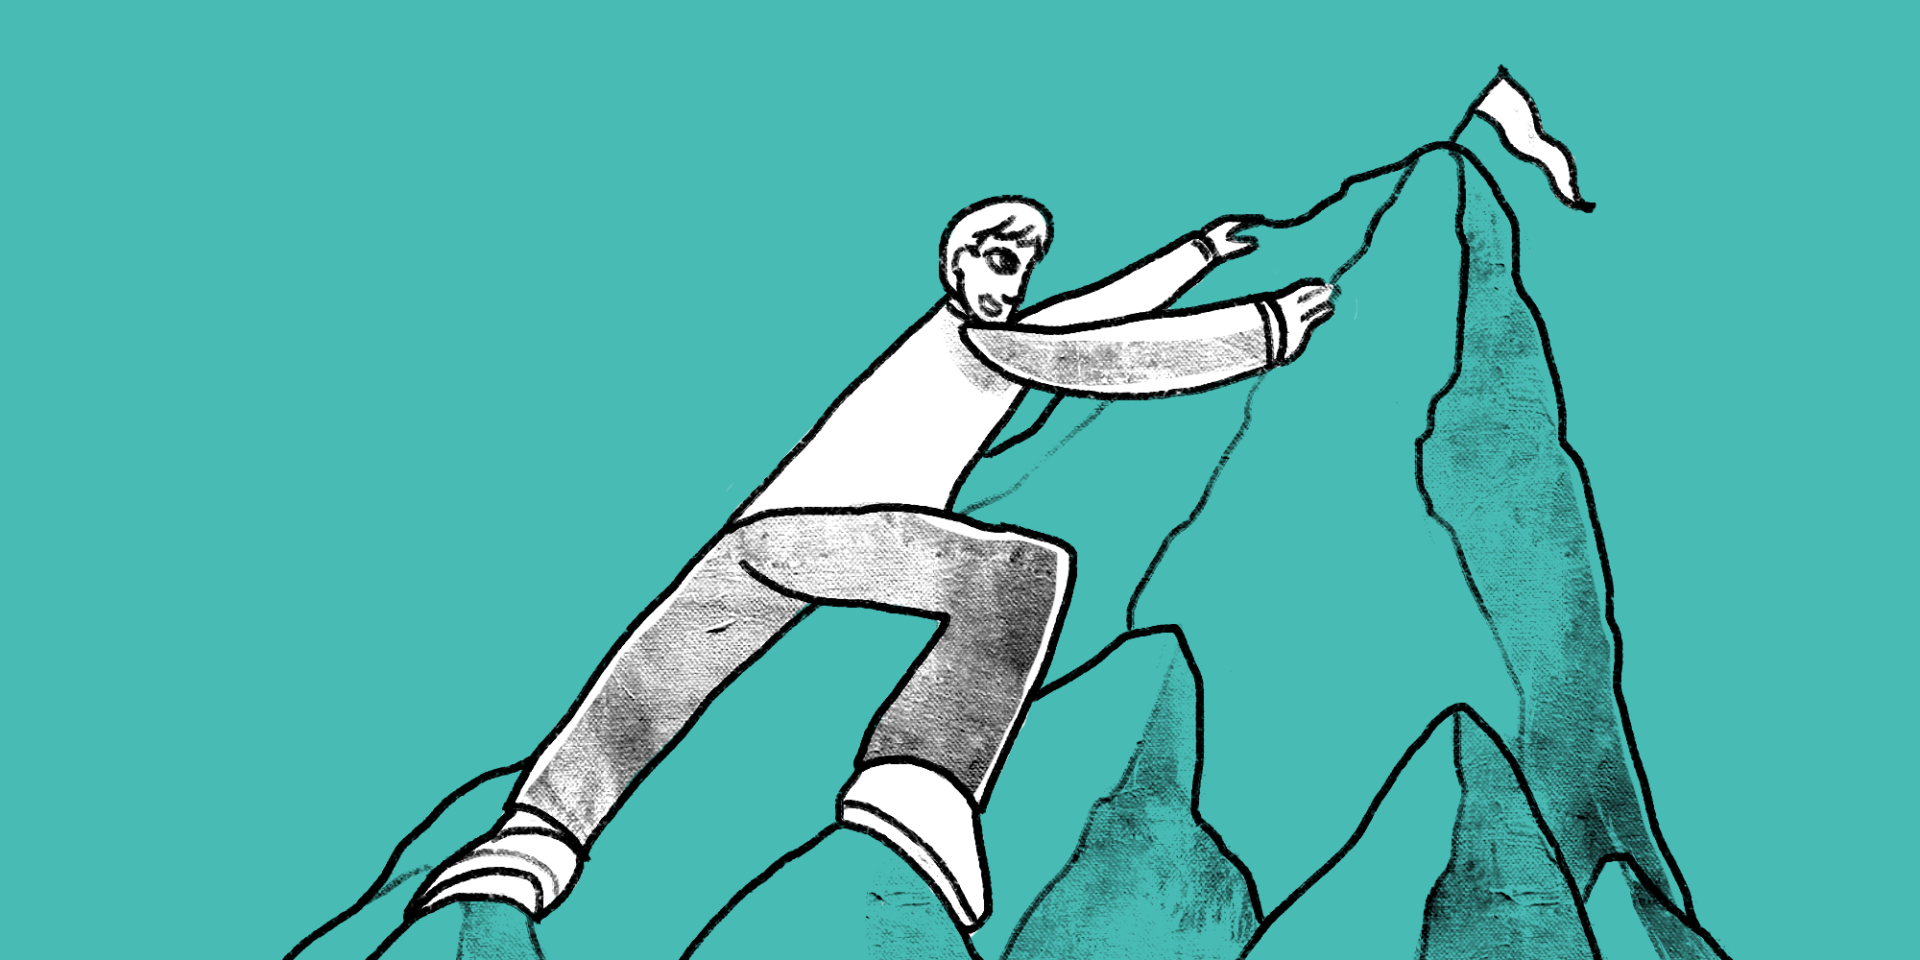 illustration of a man climbing a mountain and about to reach the flag at the peak